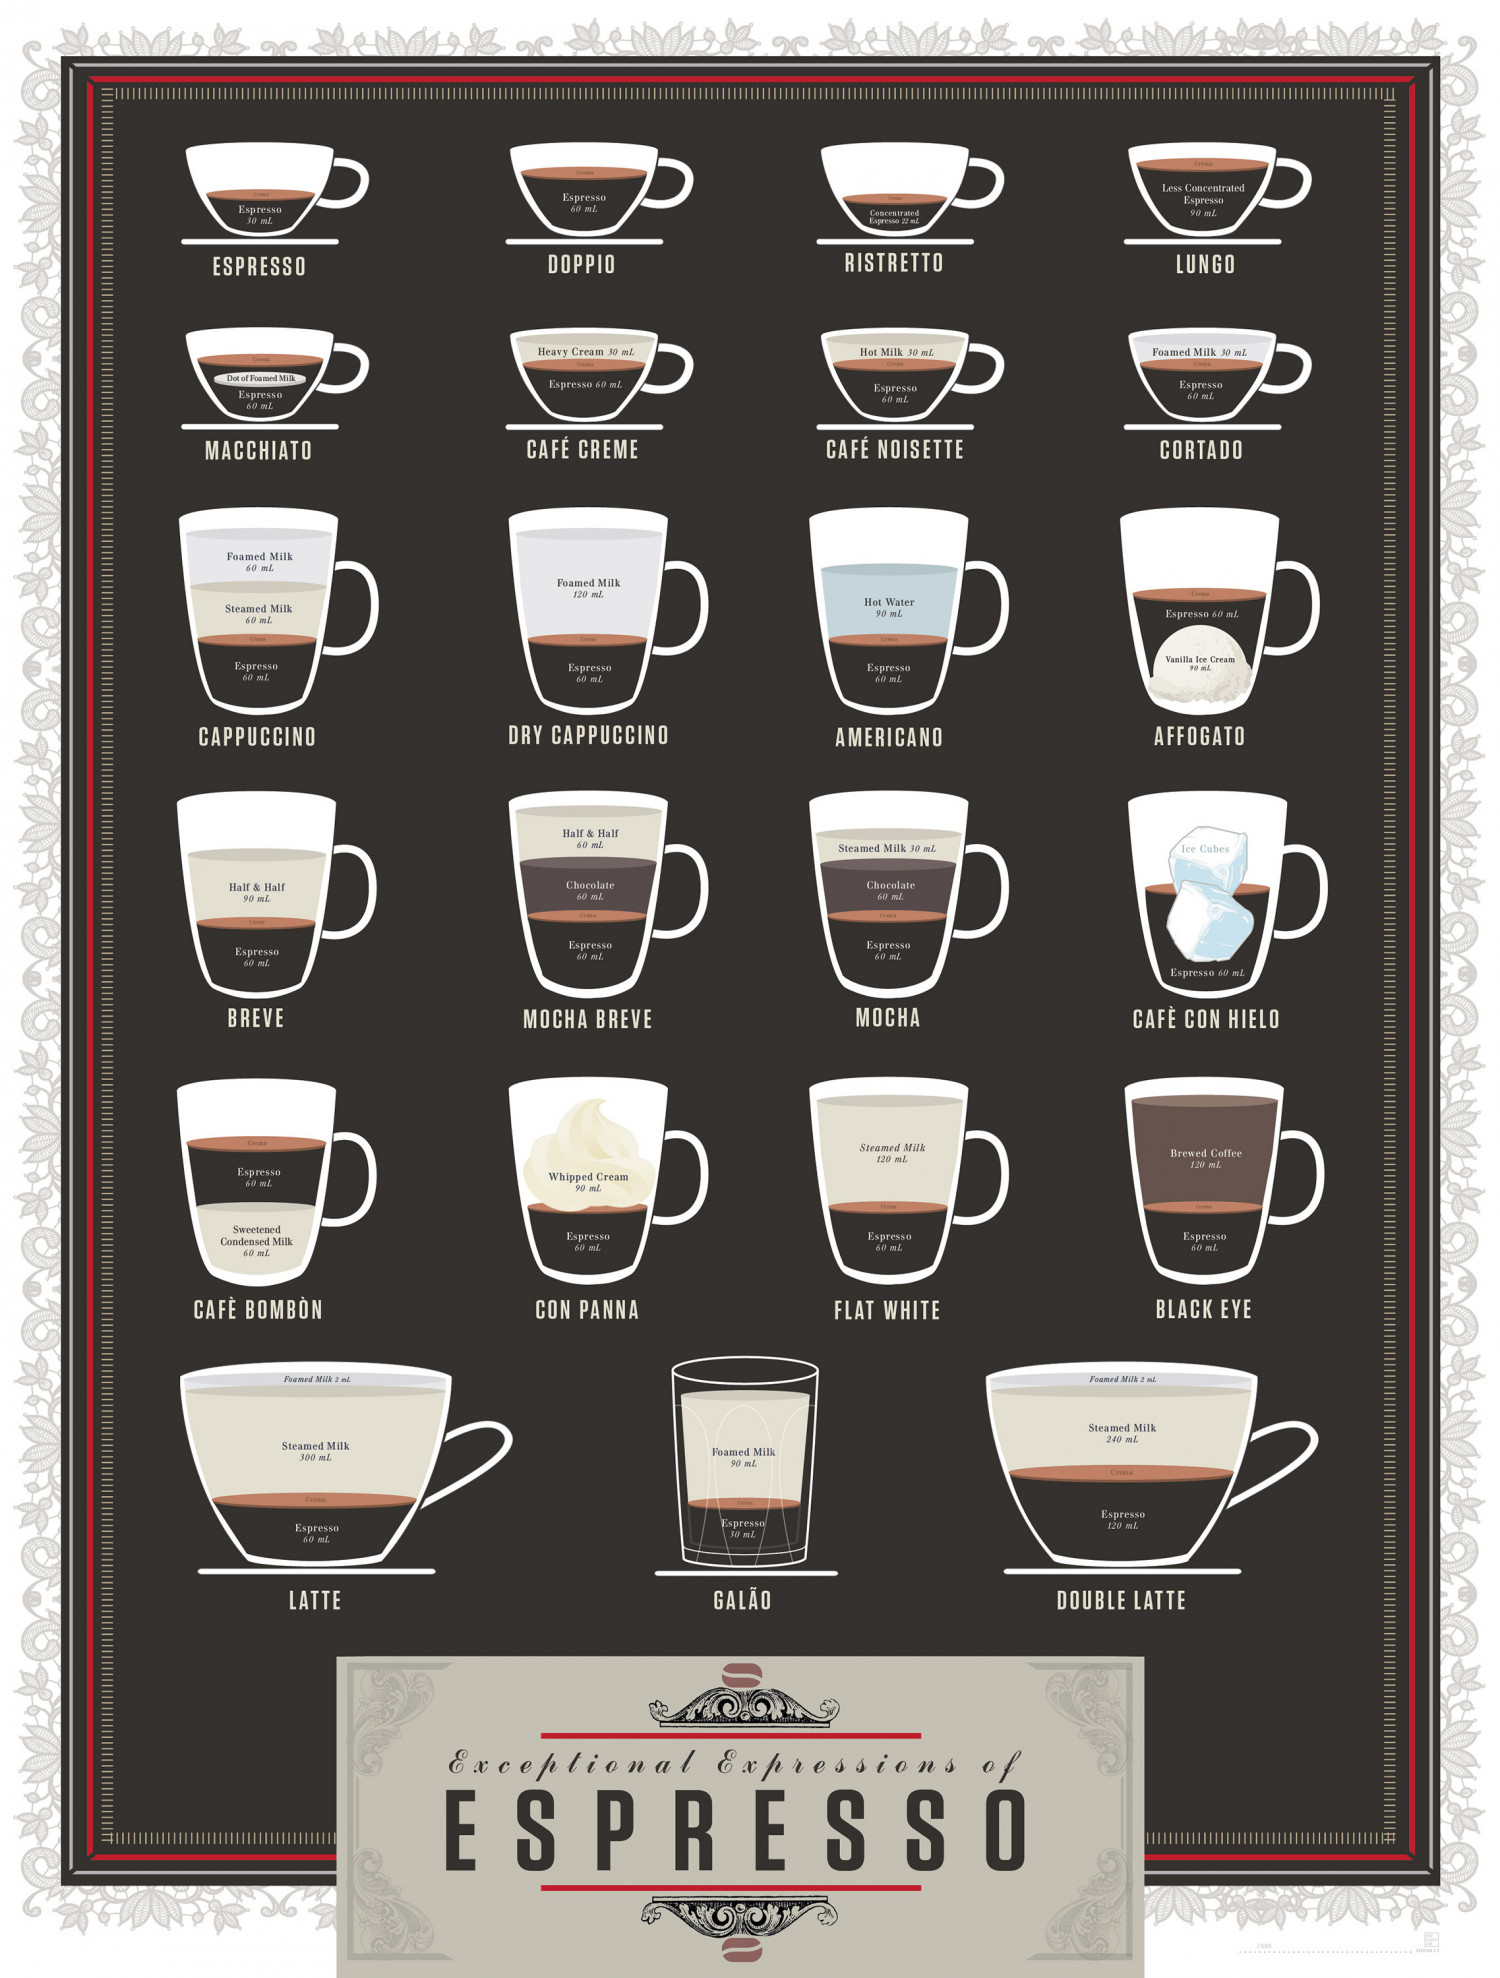 Exceptional Expressions of Espresso Infographic